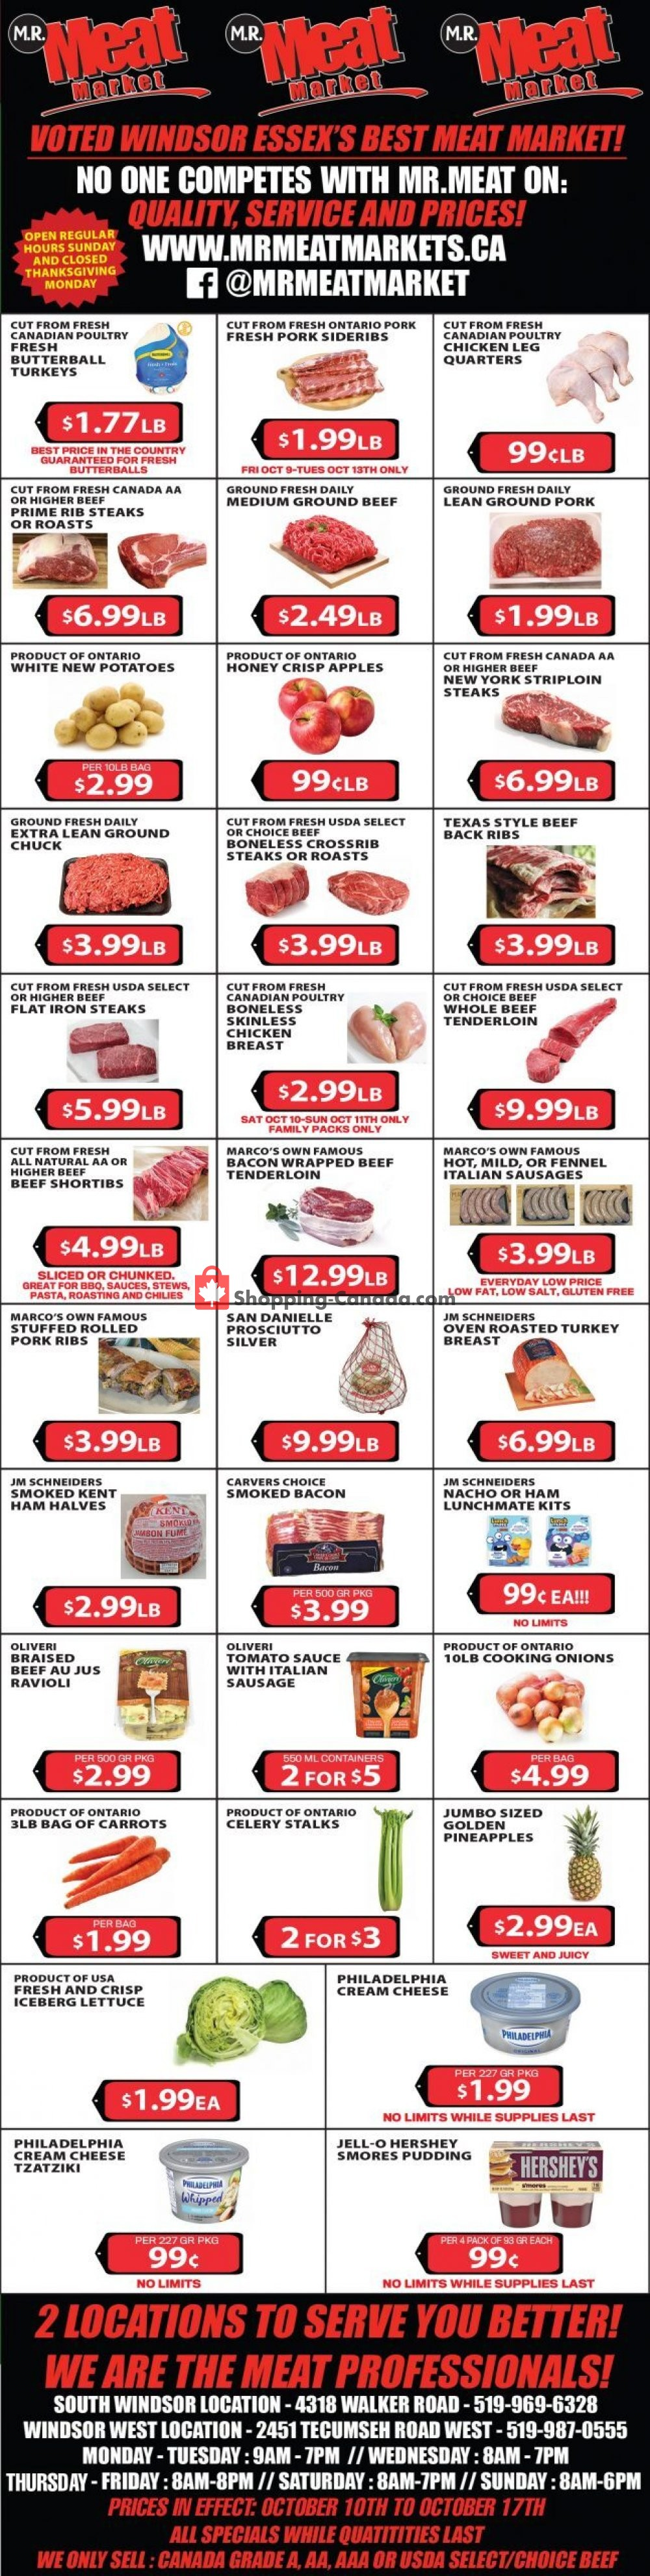 Flyer M.R. Meat Market Canada - from Saturday October 10, 2020 to Saturday October 17, 2020